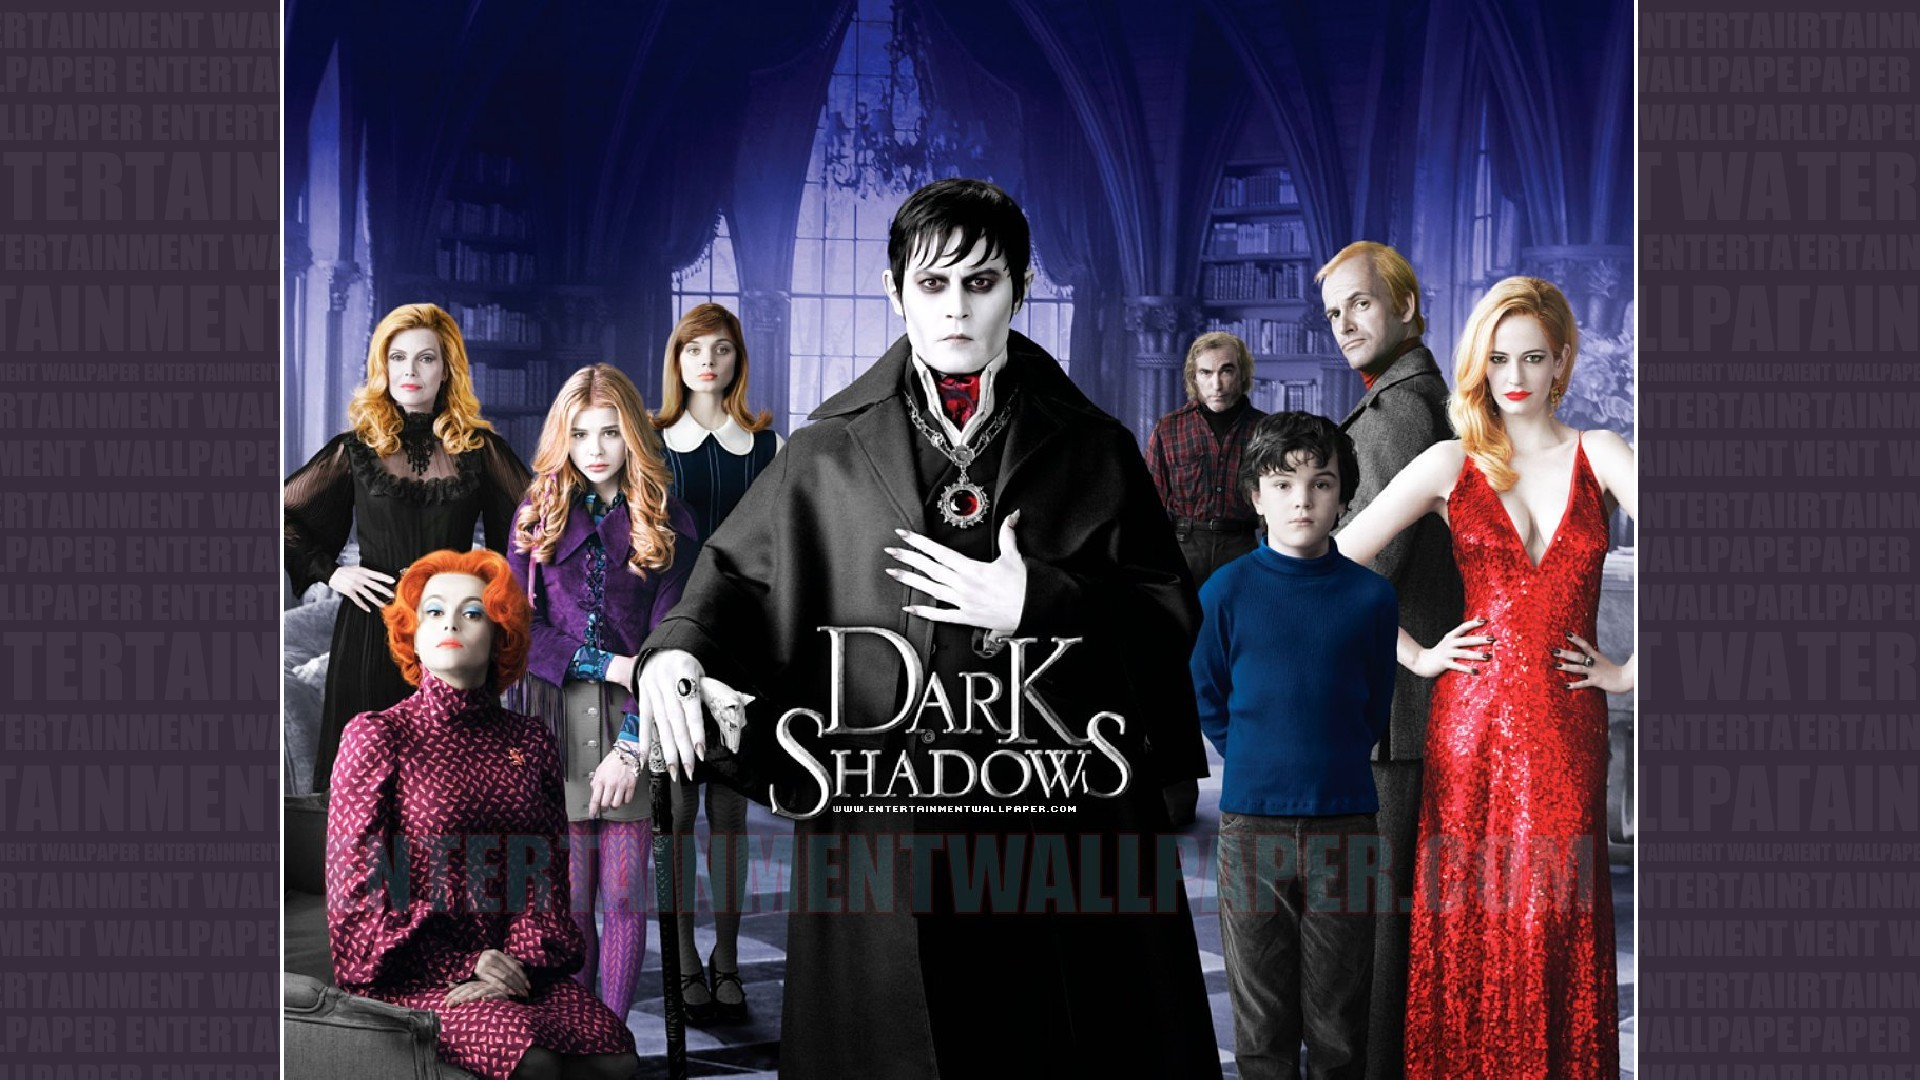 1920x1080 tv show dark shadows wallpaper 10031523 size  more dark